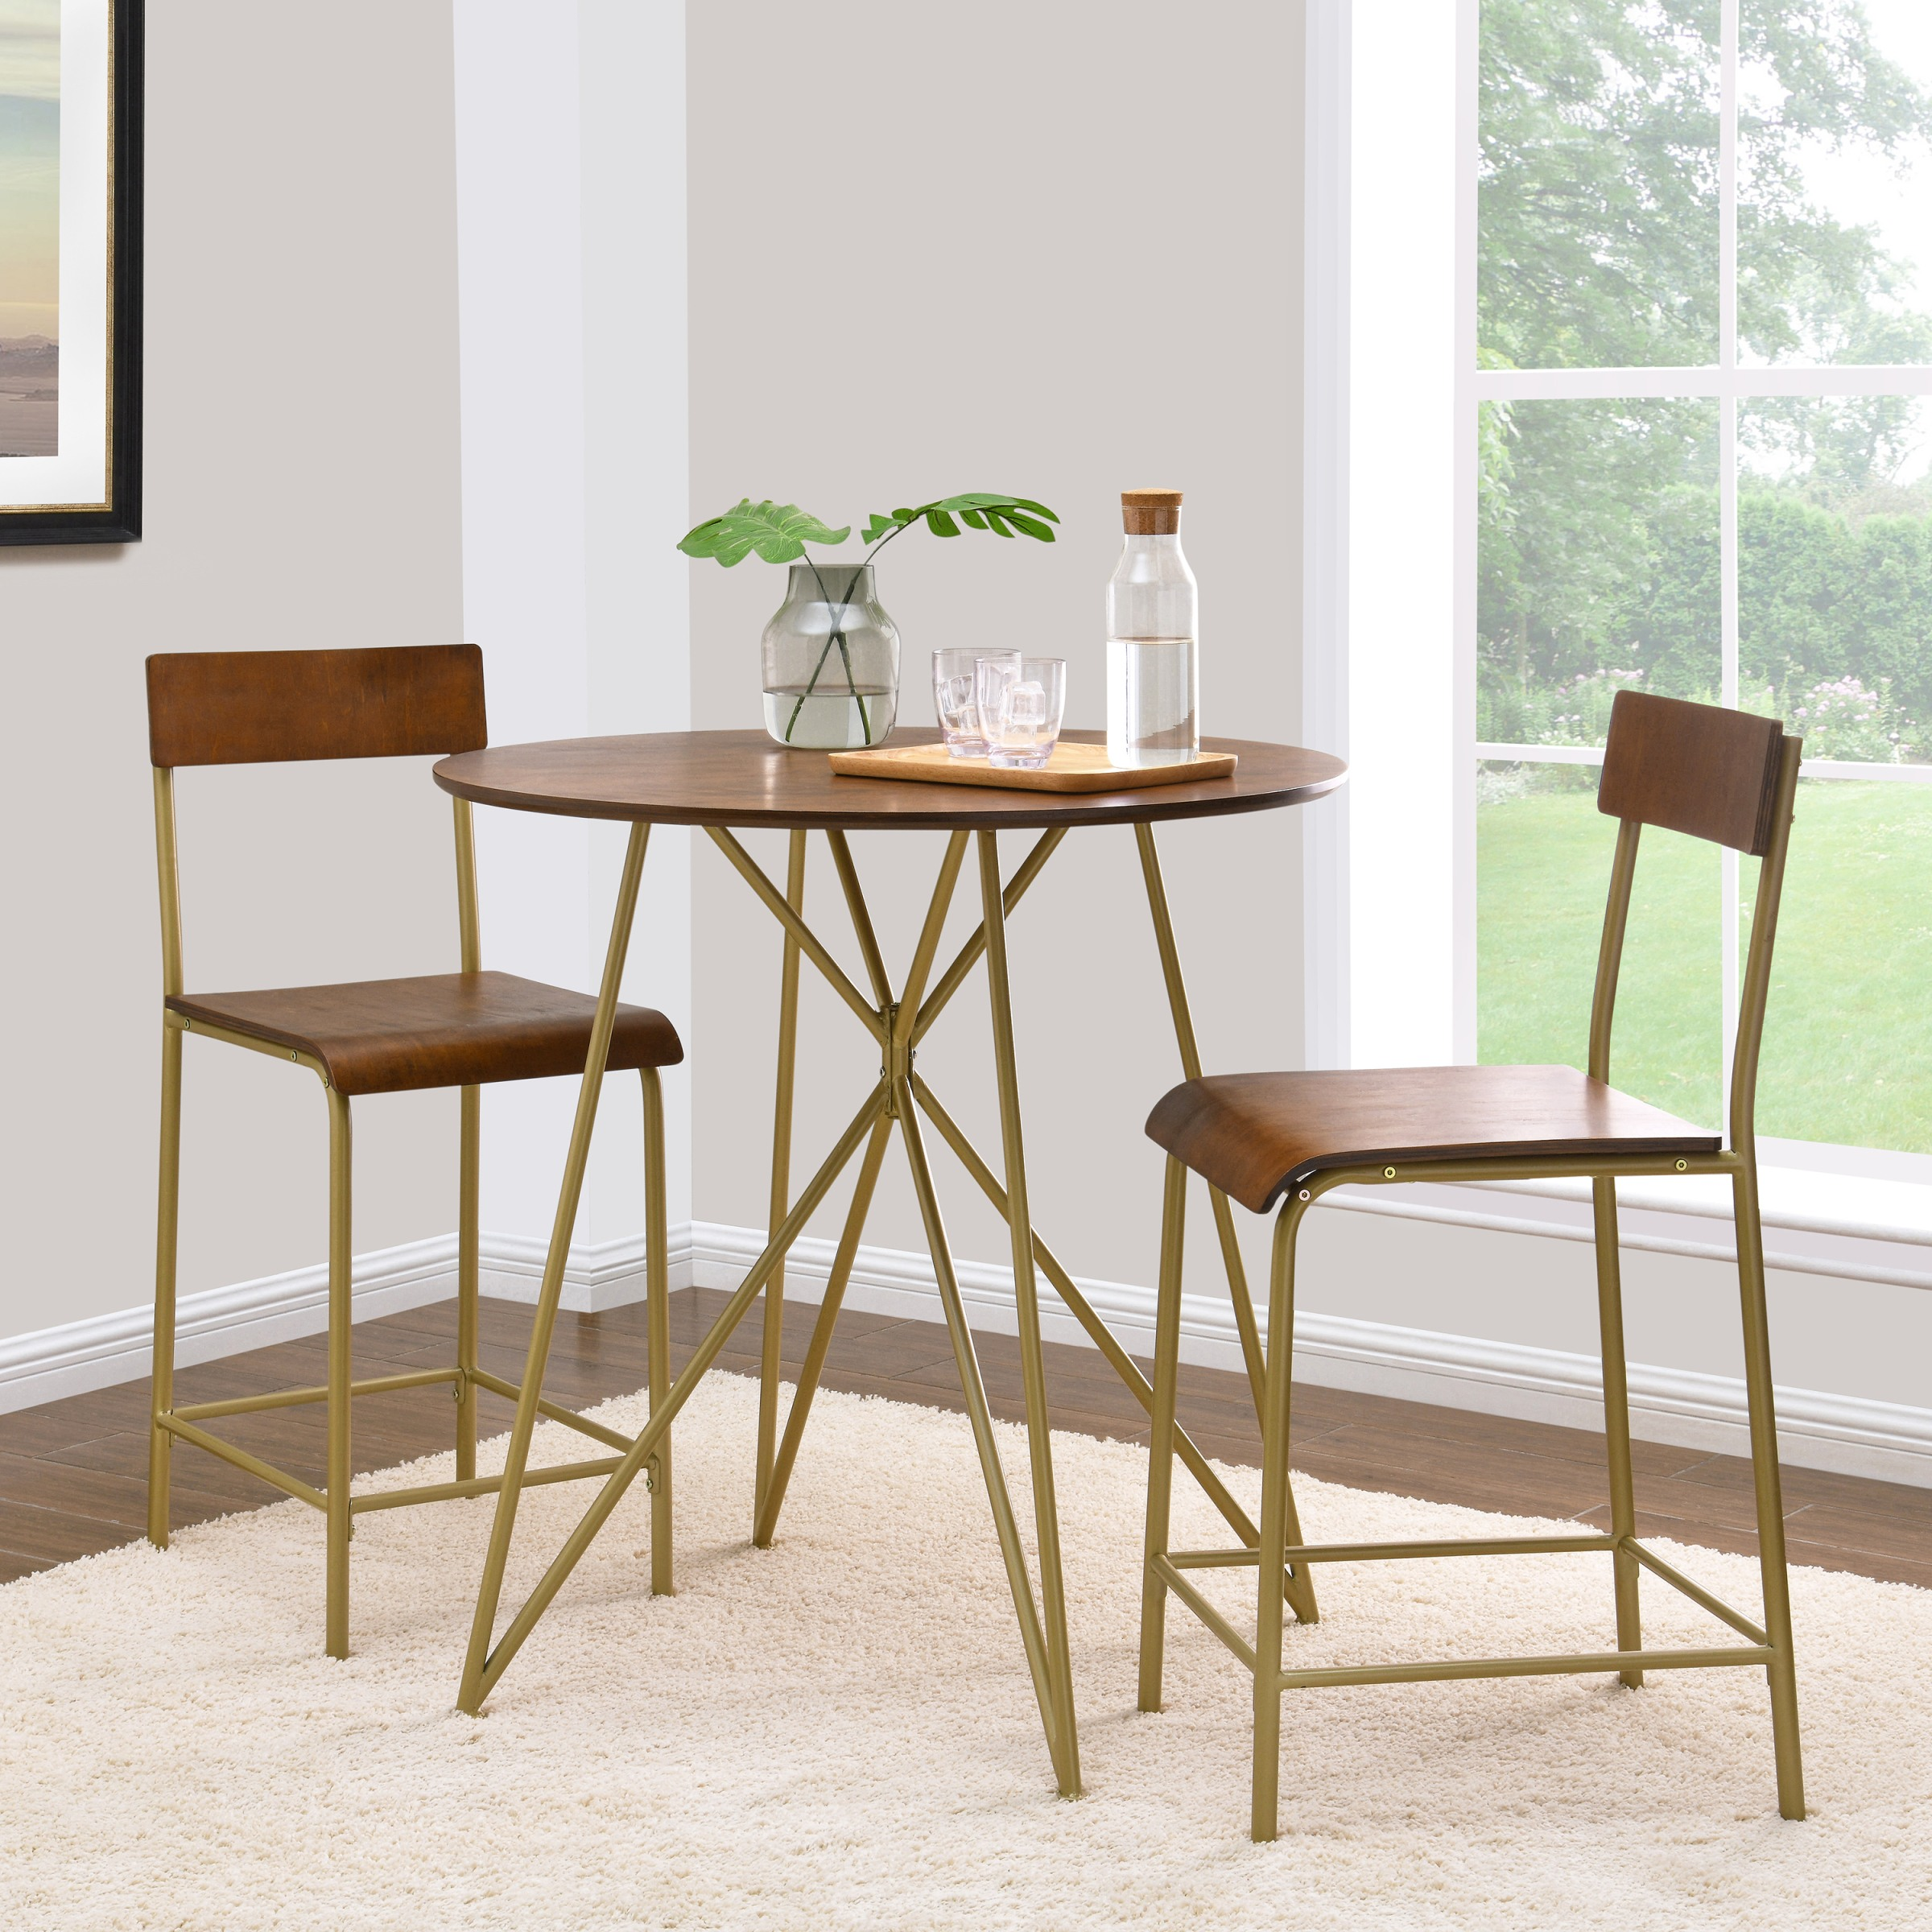 Better Homes & Gardens 3-Piece Counter Height Genevieve Dining Set, Wood with Gold Frame